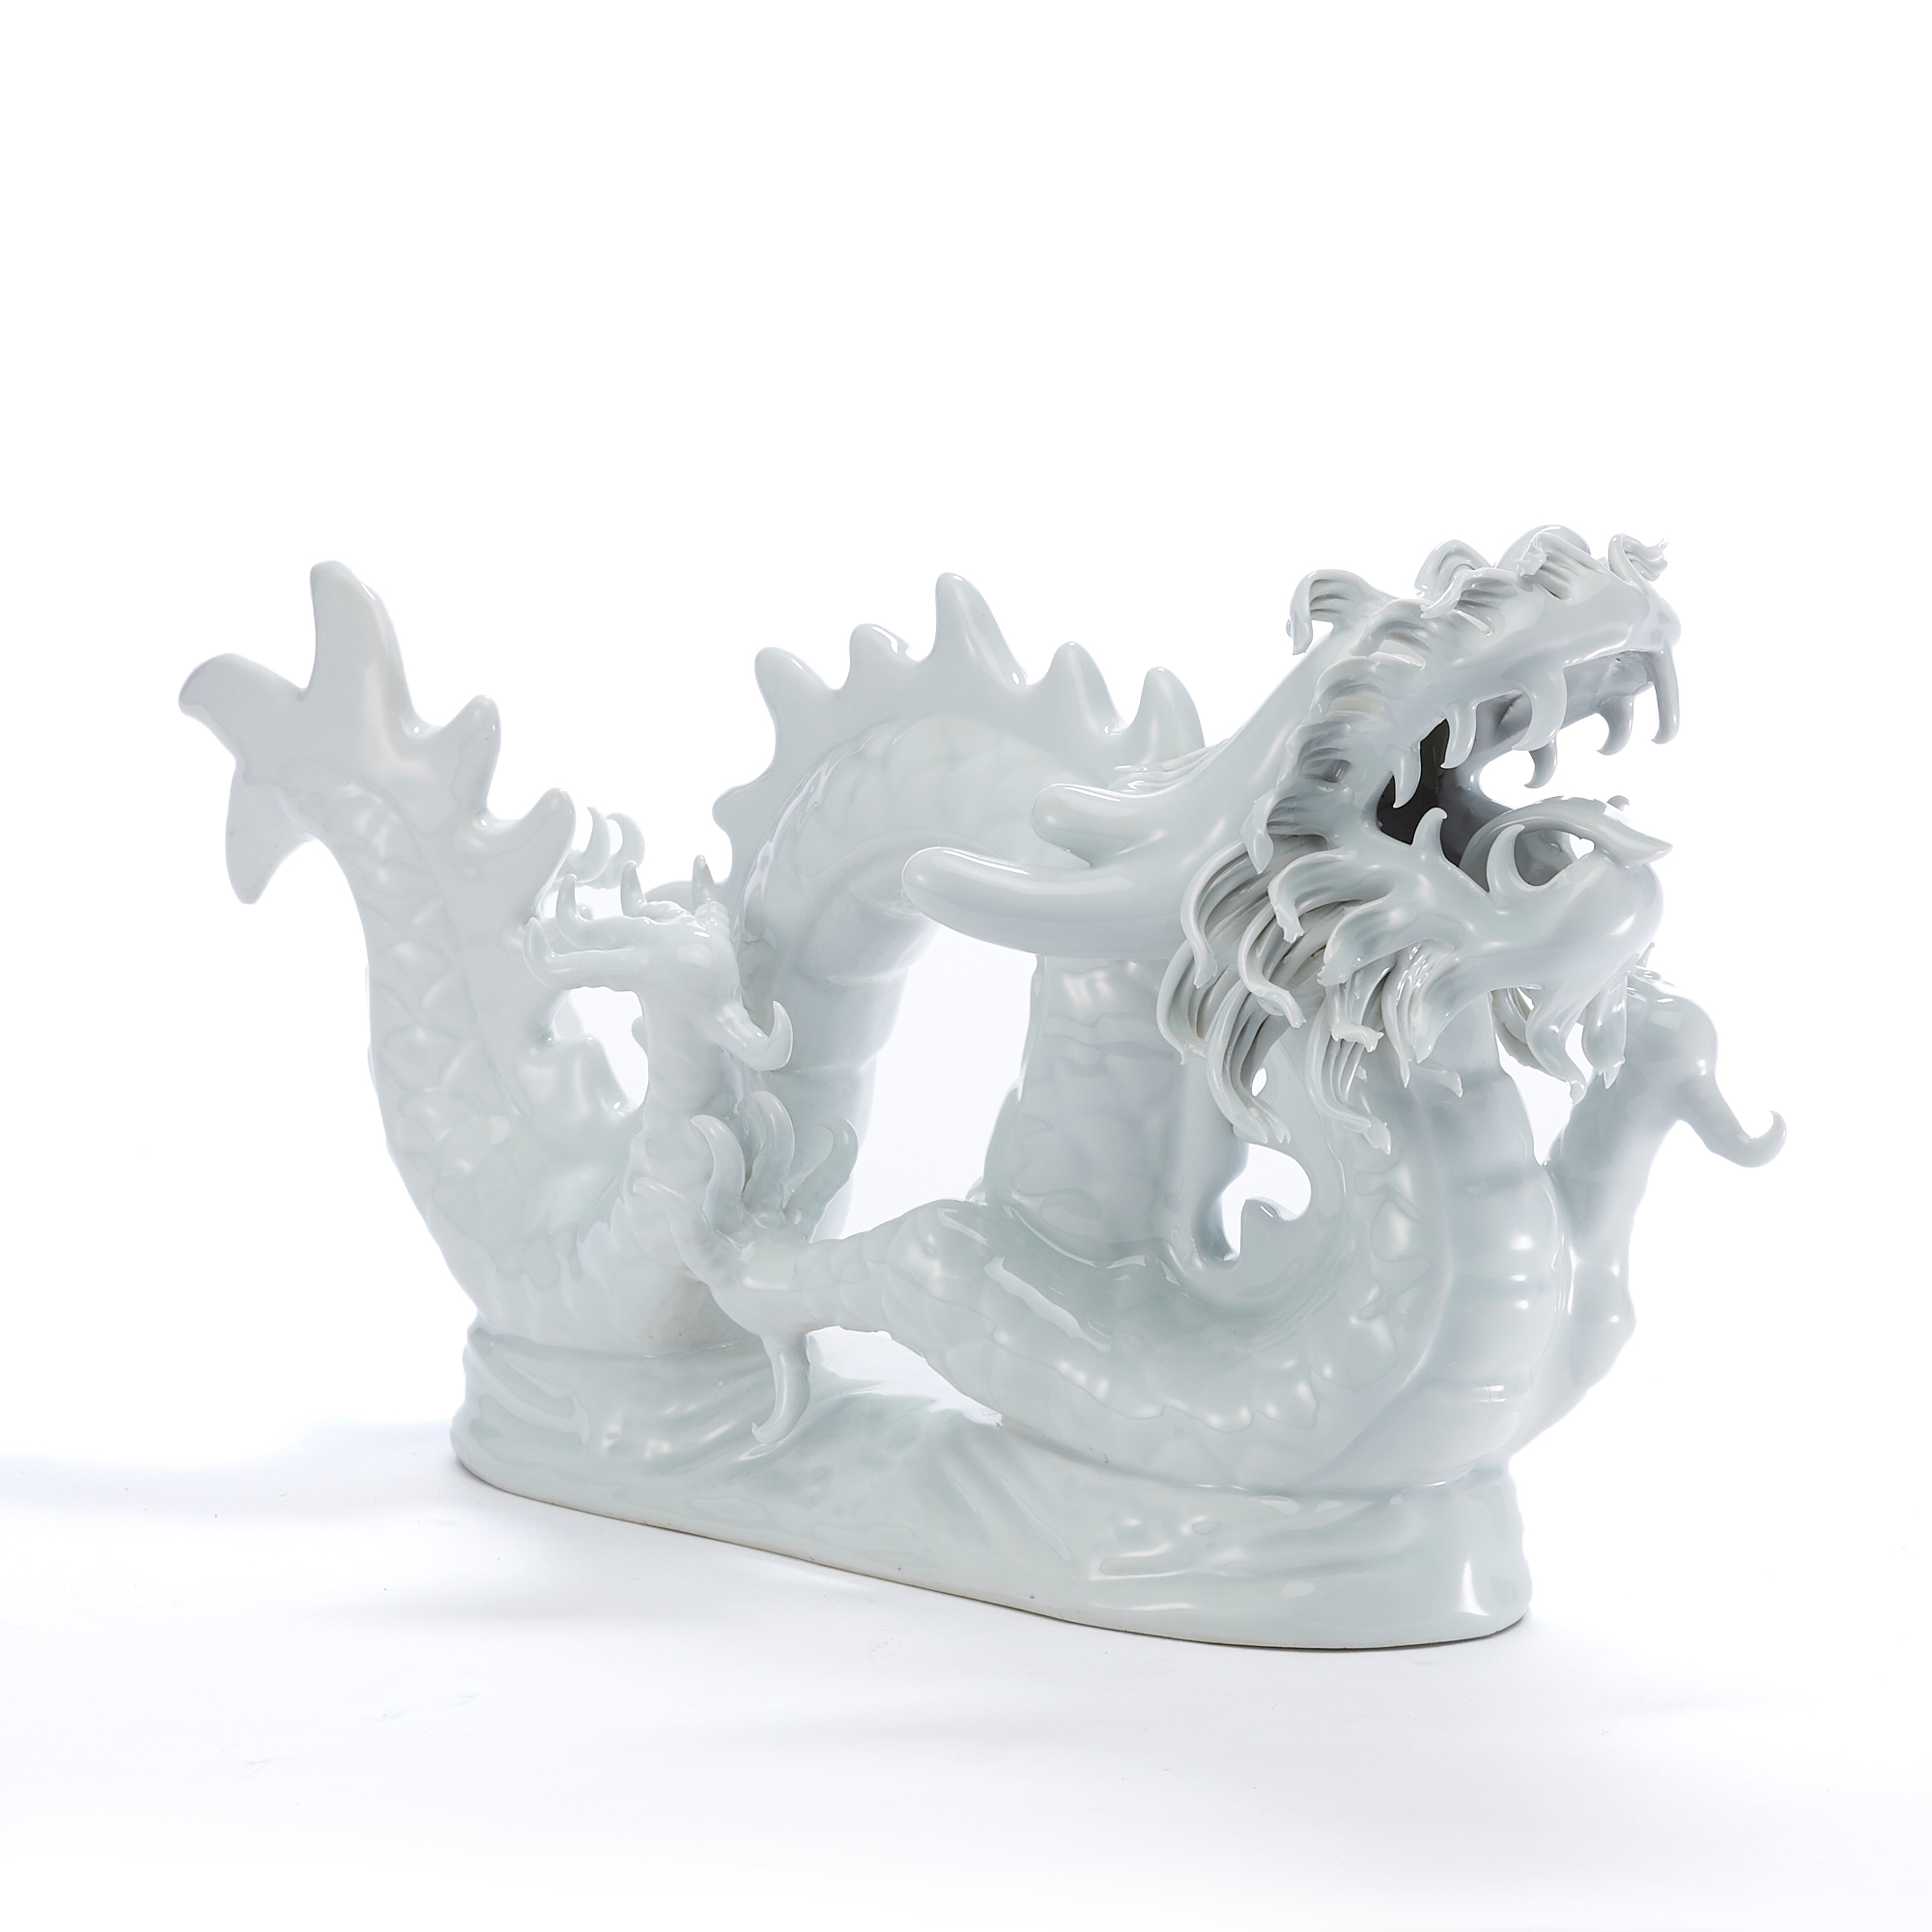 Antiqued White Porcelain Dragon Figure